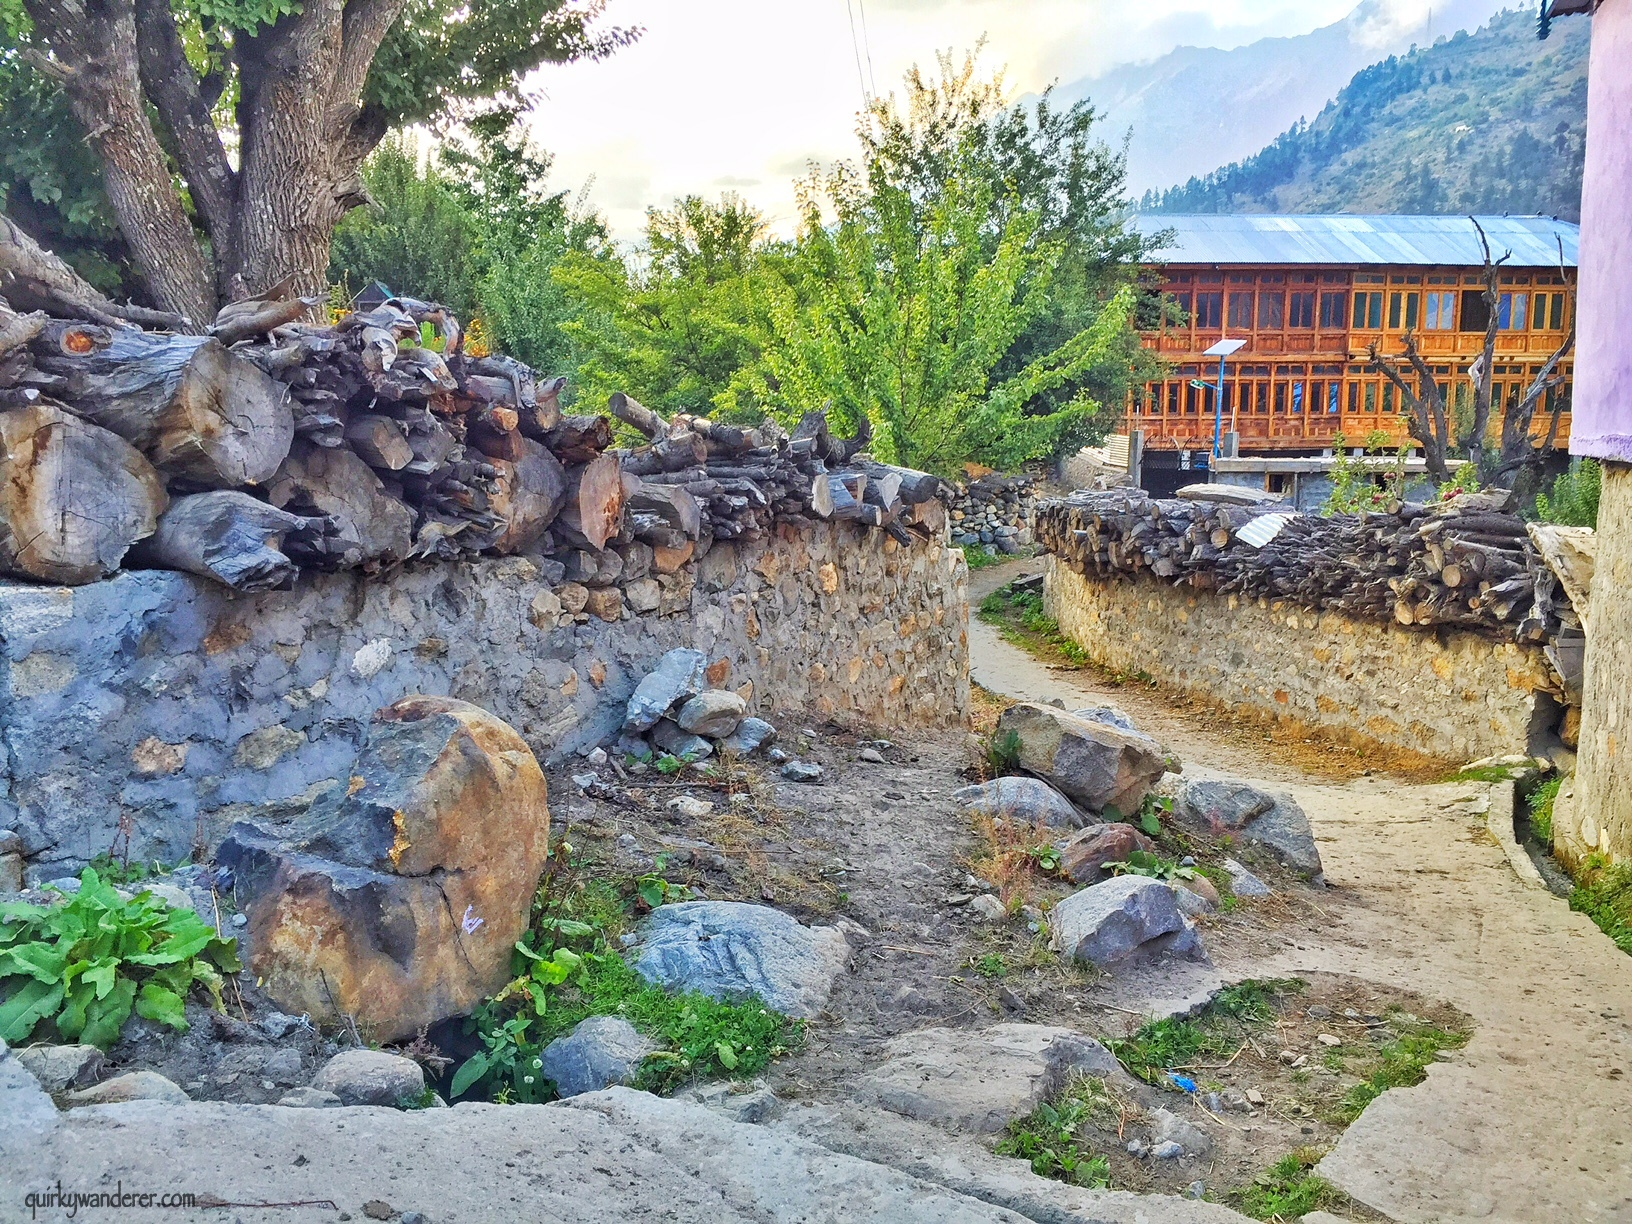 batseri-village-sangla-valley-kinnaur